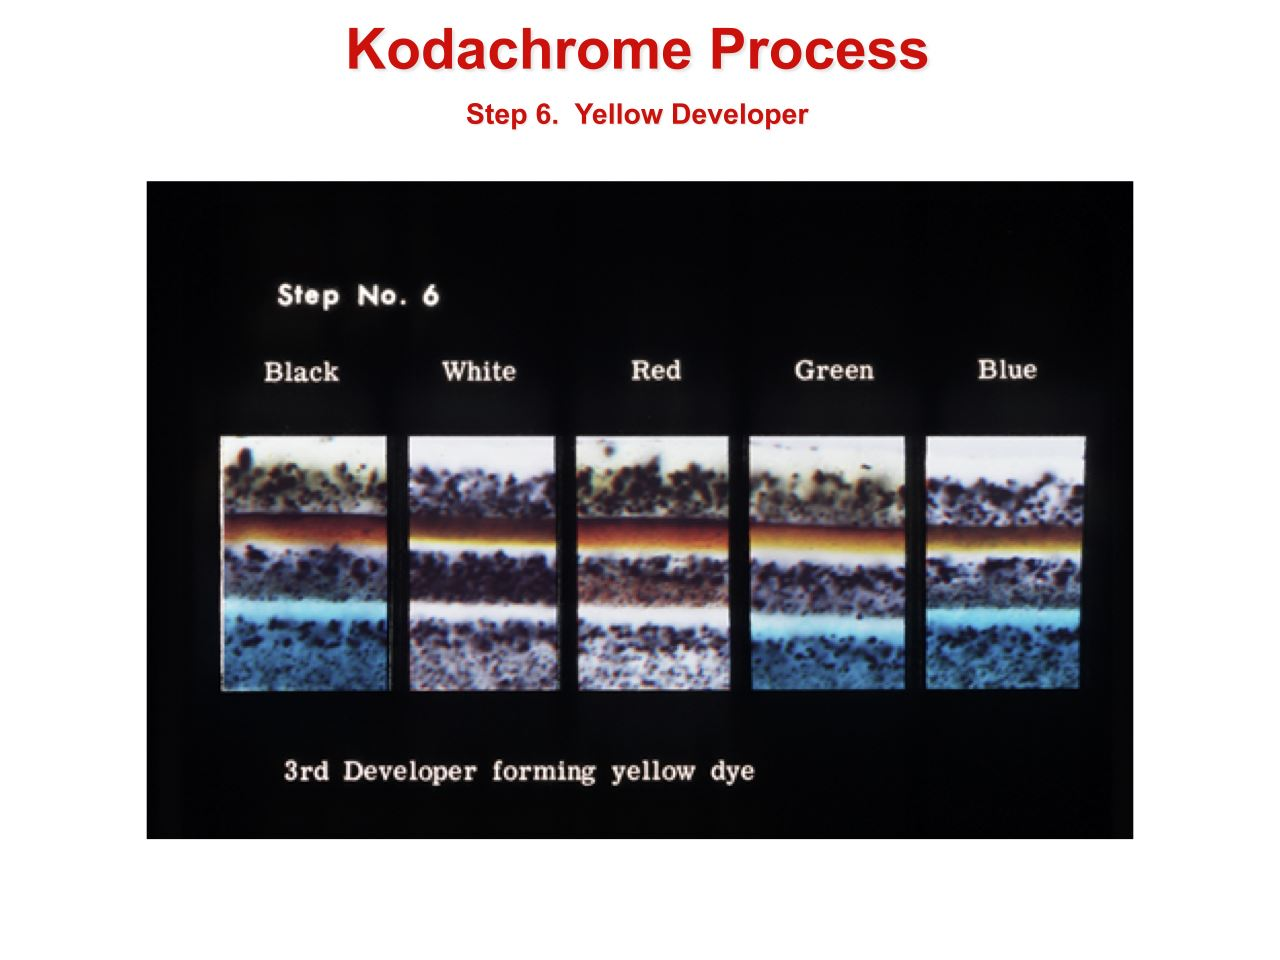 How to Develop Kodachrome Film (B&W Hand Processing & Kodak's K-14 Process)